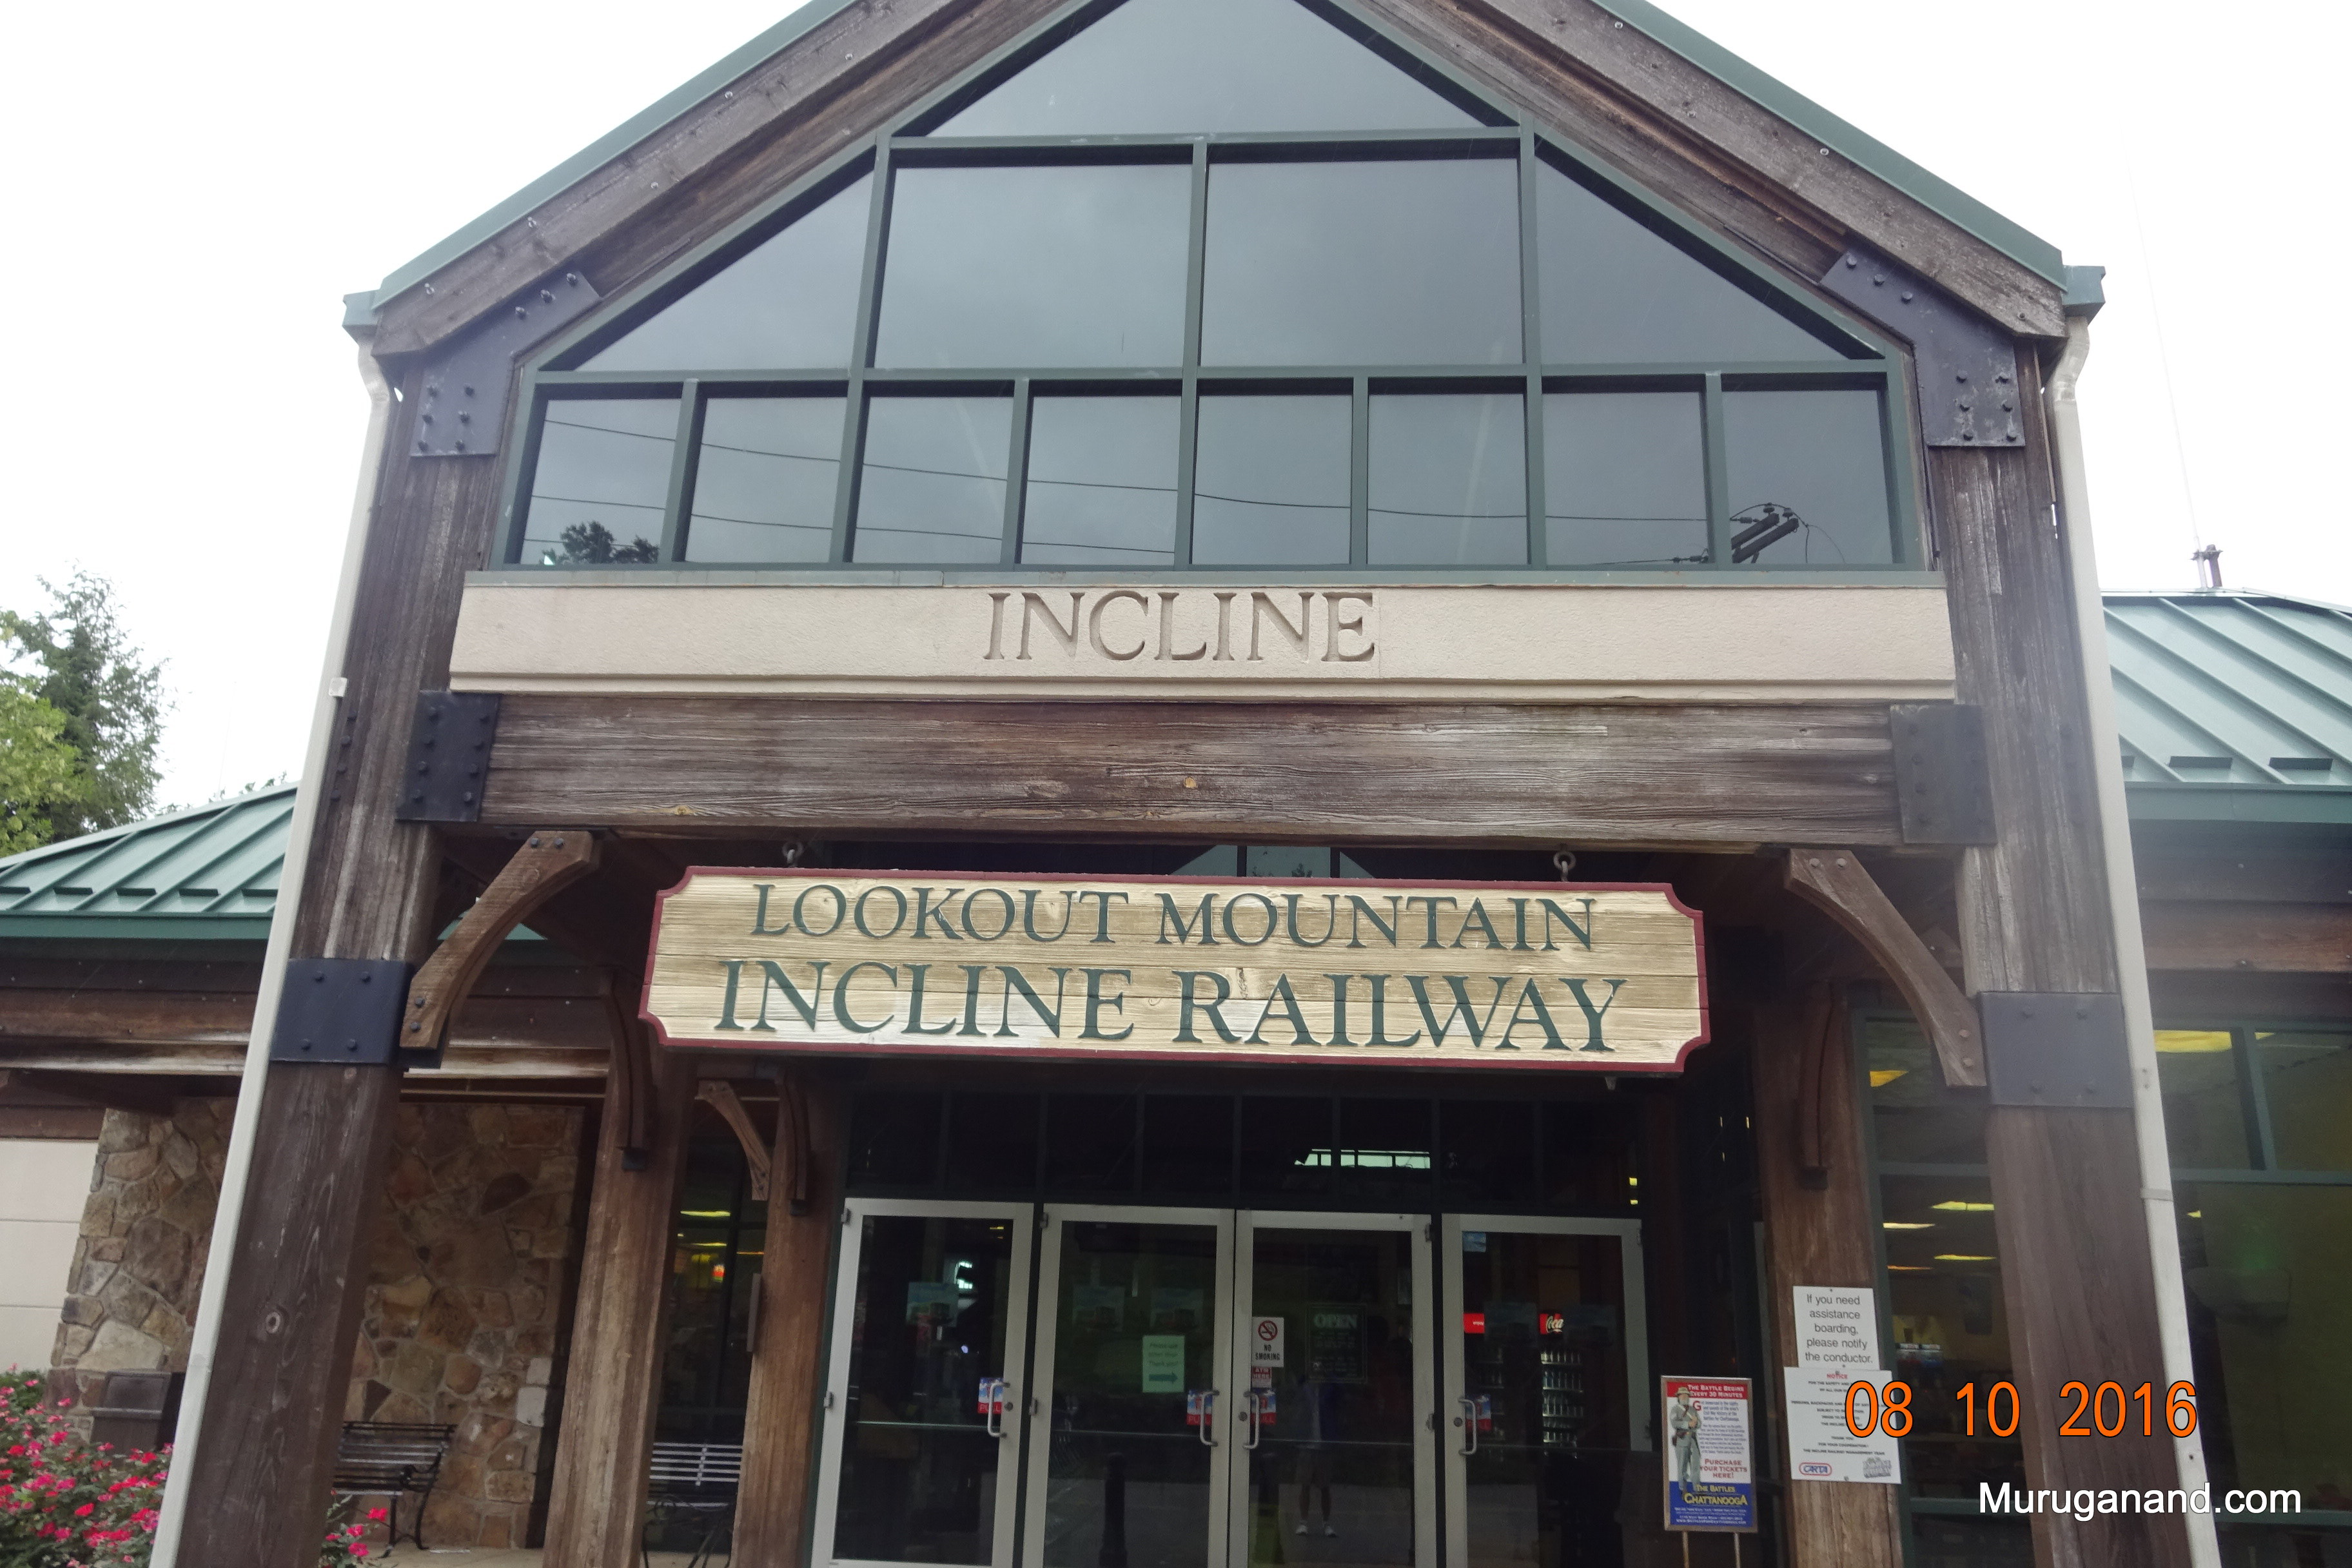 Incline railway is a mechanical engineering marvel.